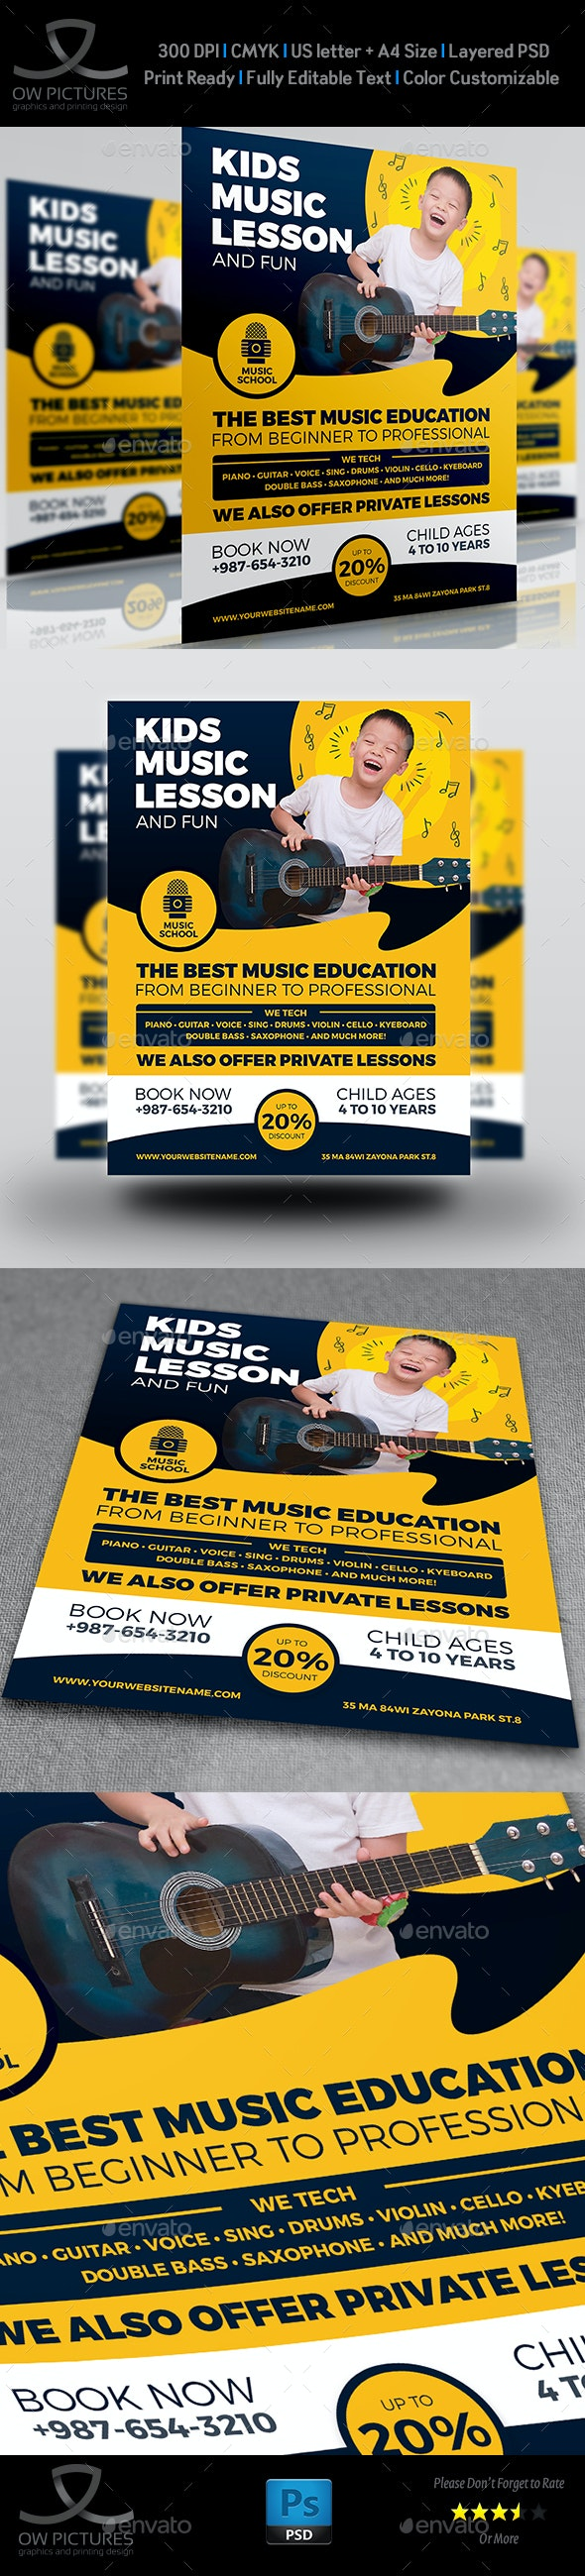 Child Music Lesson Services Flyer Template - Flyers Print Templates